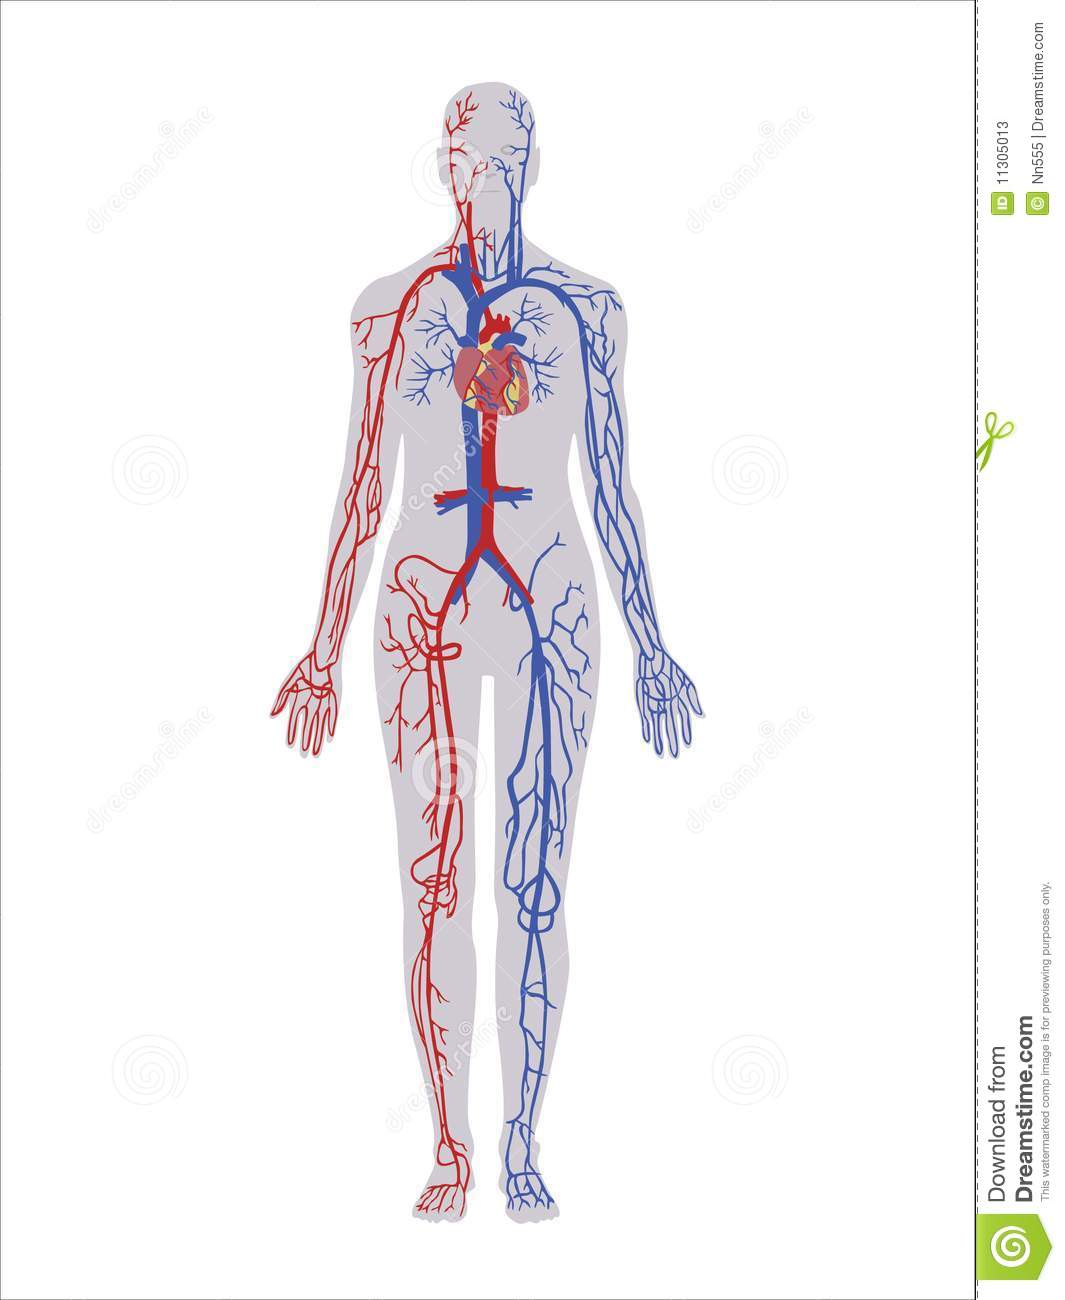 Vascular System In The Head And Neck in addition Ciculatory Problems 30980041 likewise Pelvic And Lower Extremity Arteries also Lecture   Early Vascular Development further Royalty Free Stock Photos Human Vascular System Image22096538. on vascular system arteries